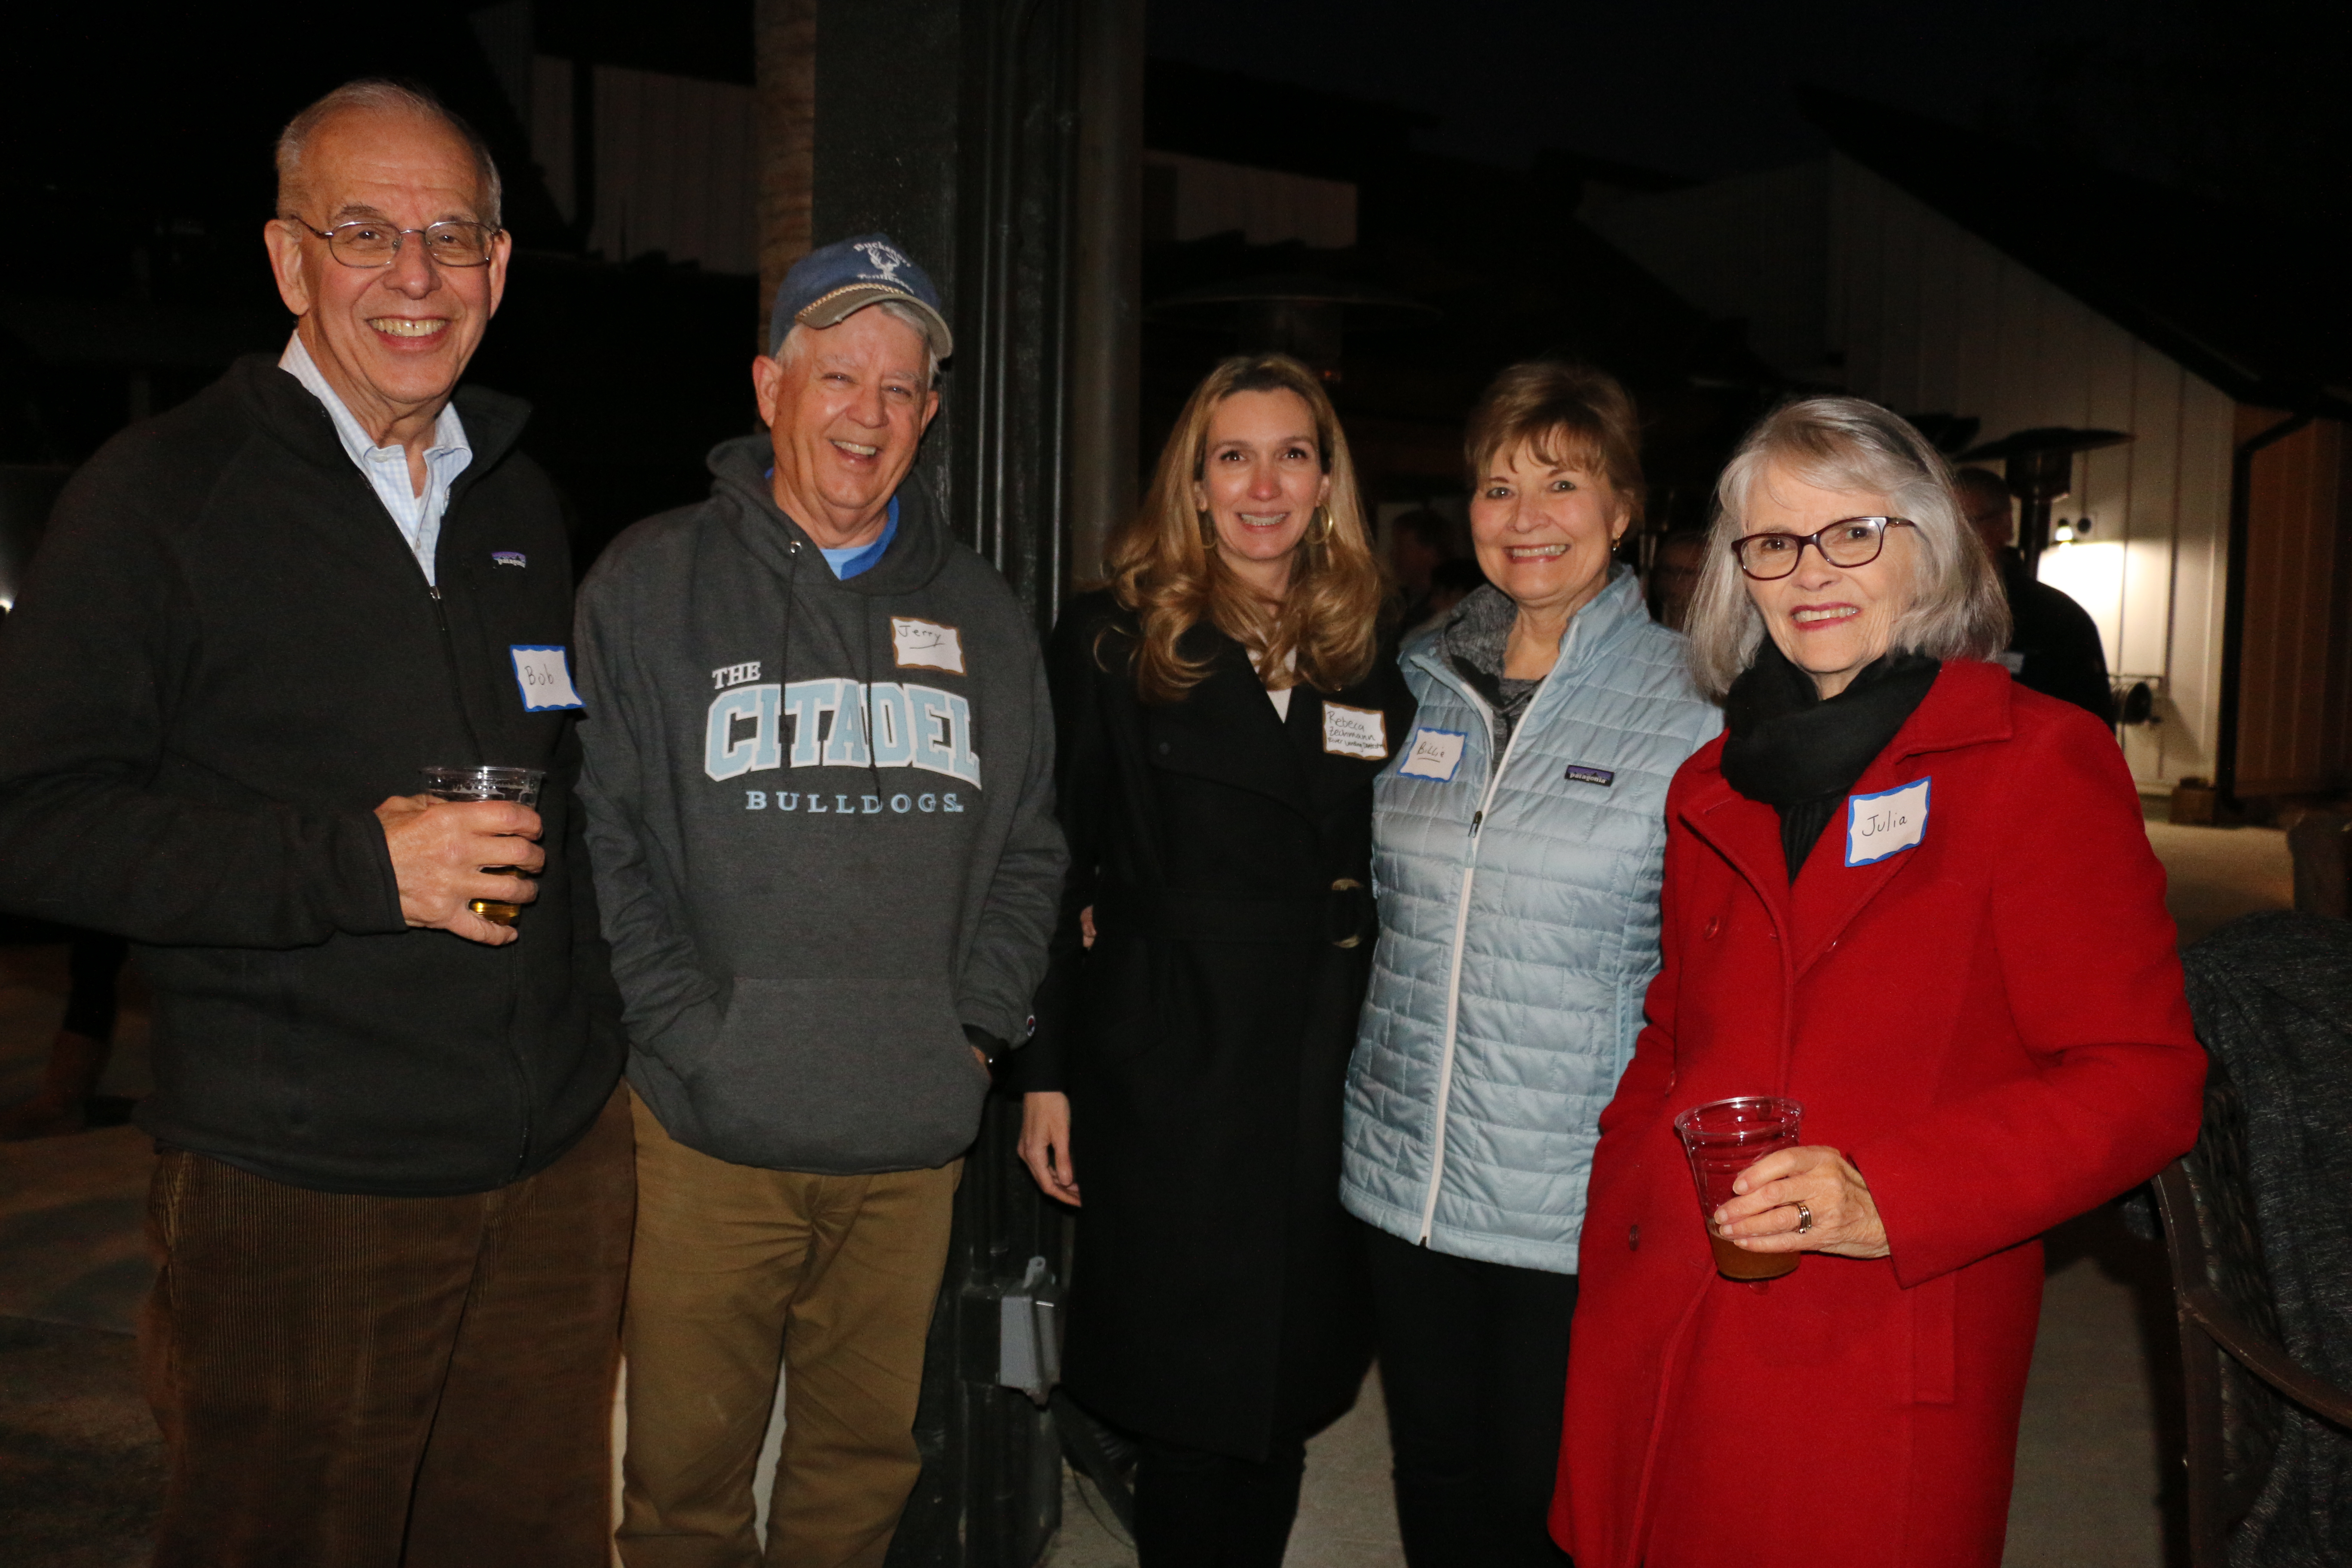 Bob Grubb, Jerry Bacon, Dr. Rebecca Zechmann, Billie Bacon and Julia Grubb enjoyed a cool evening with oysters and fellowship.